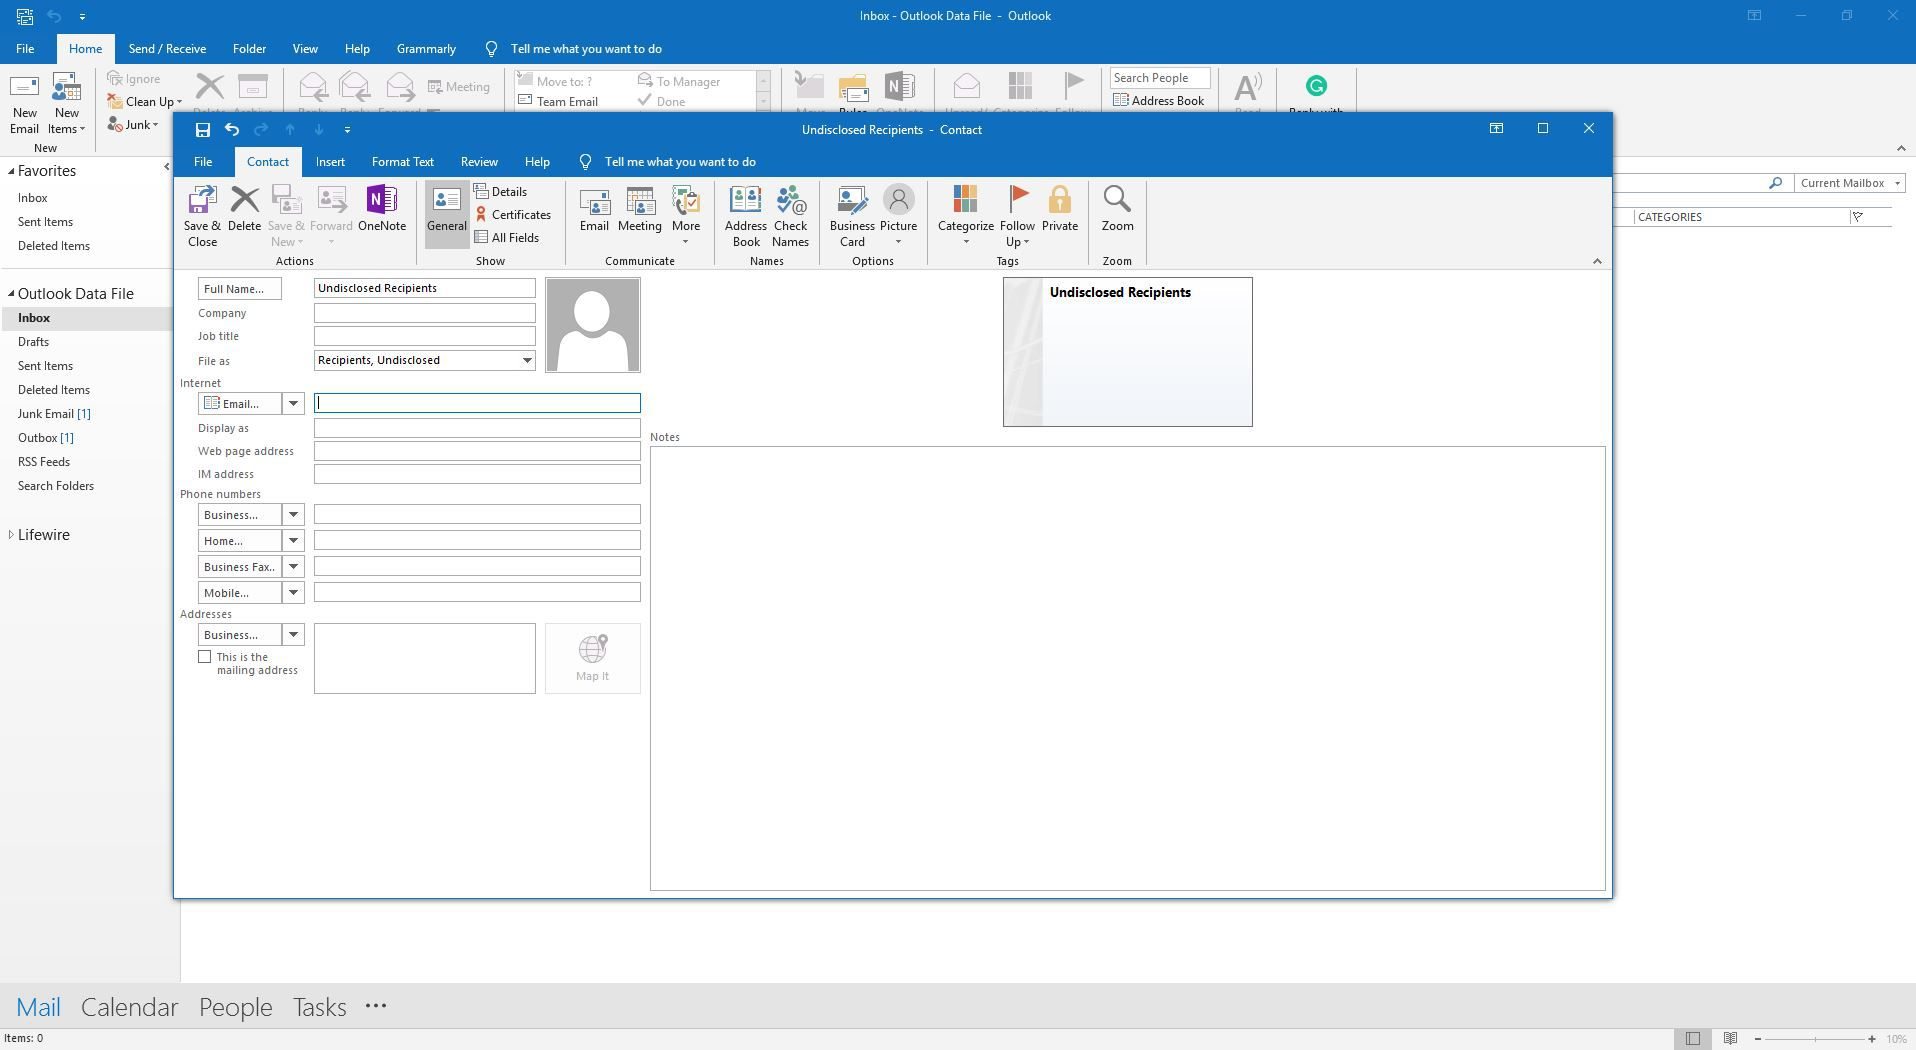 How to Send Email to Undisclosed Recipients in Outlook